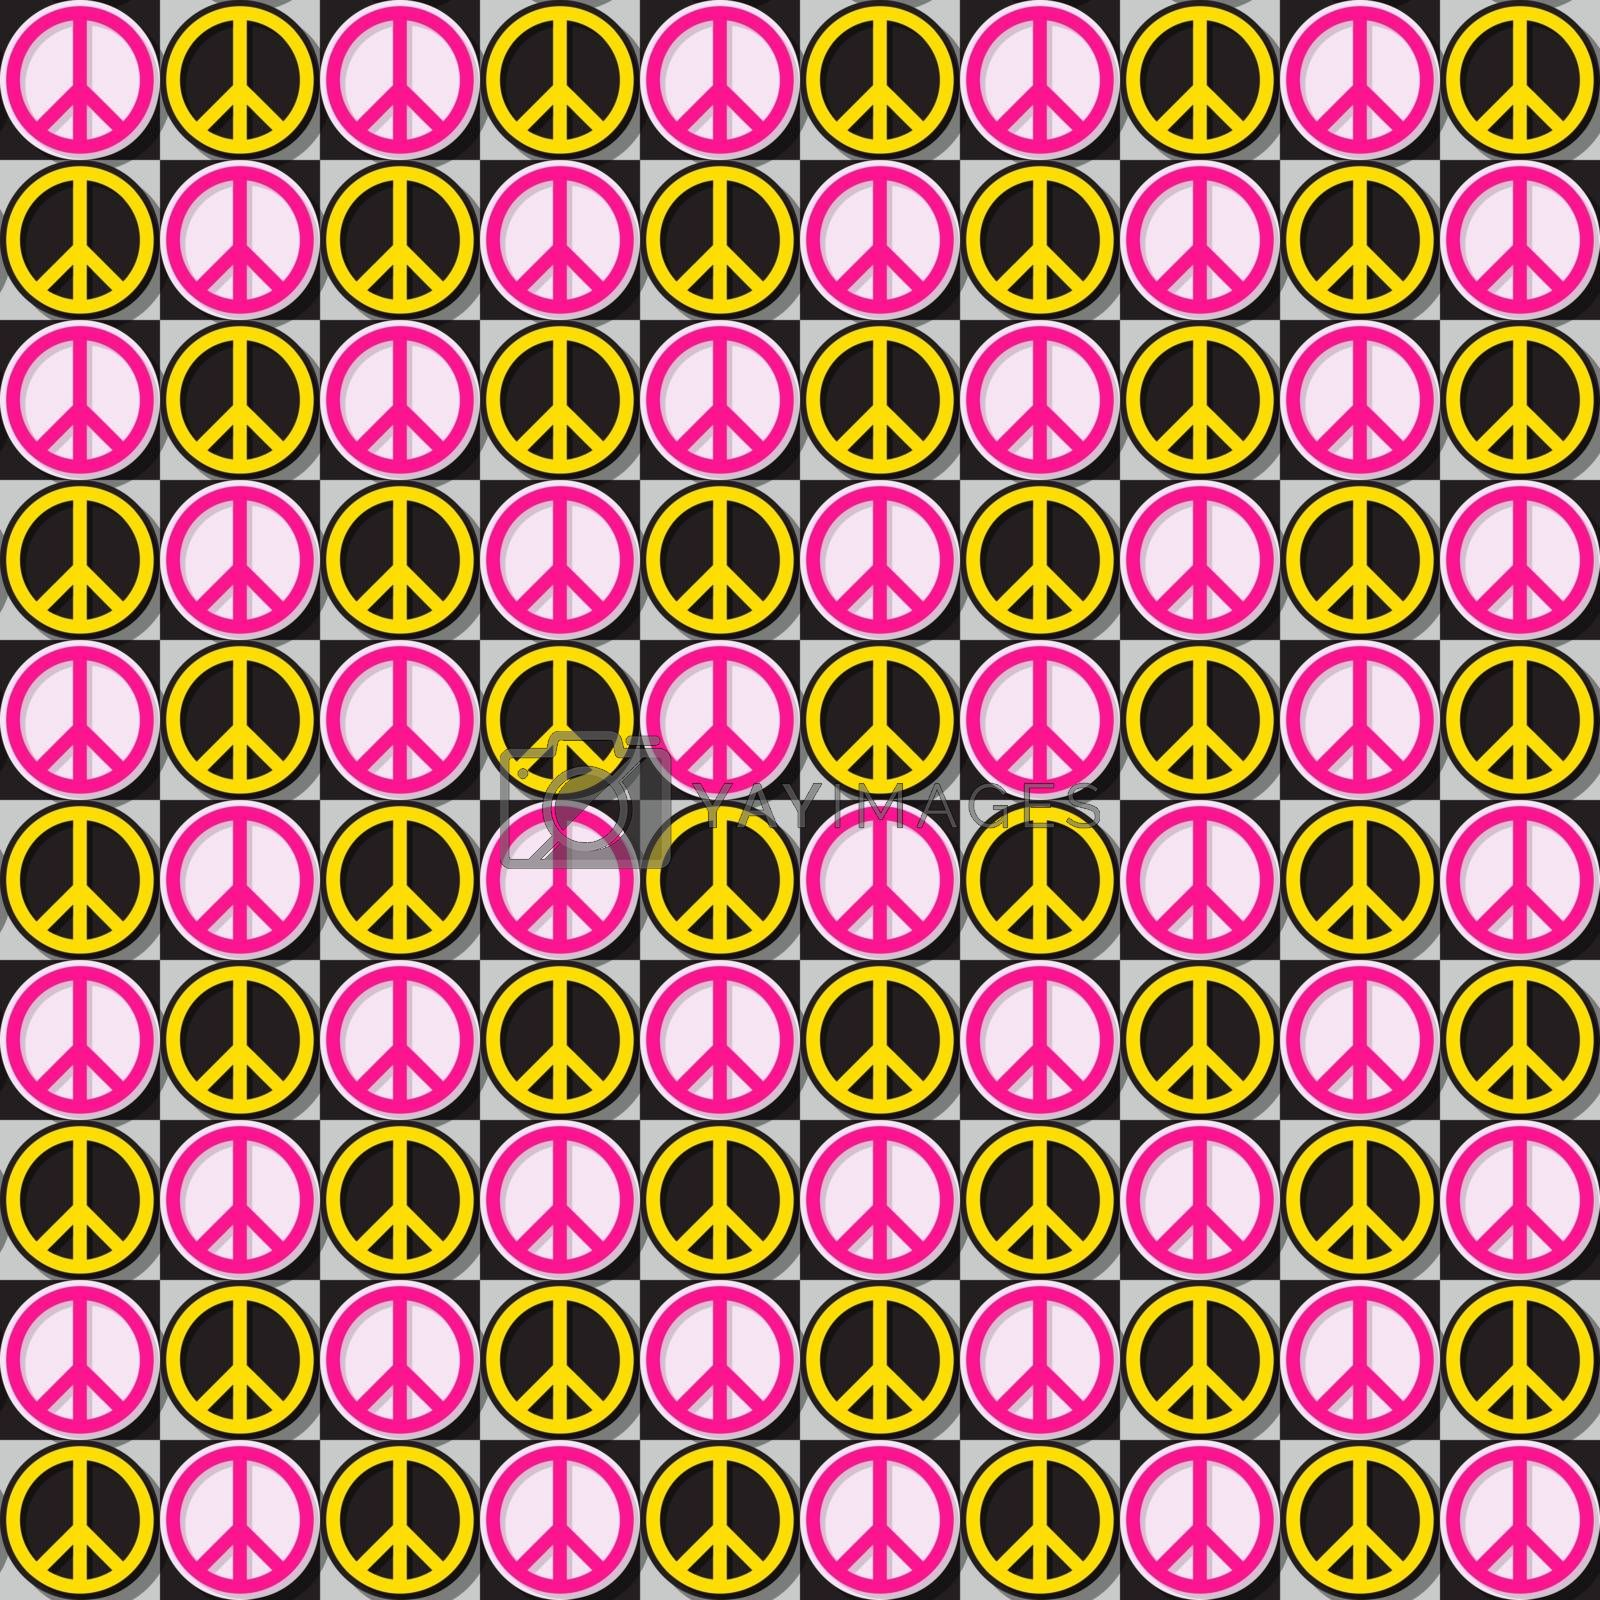 Flower Power , seamless repeating